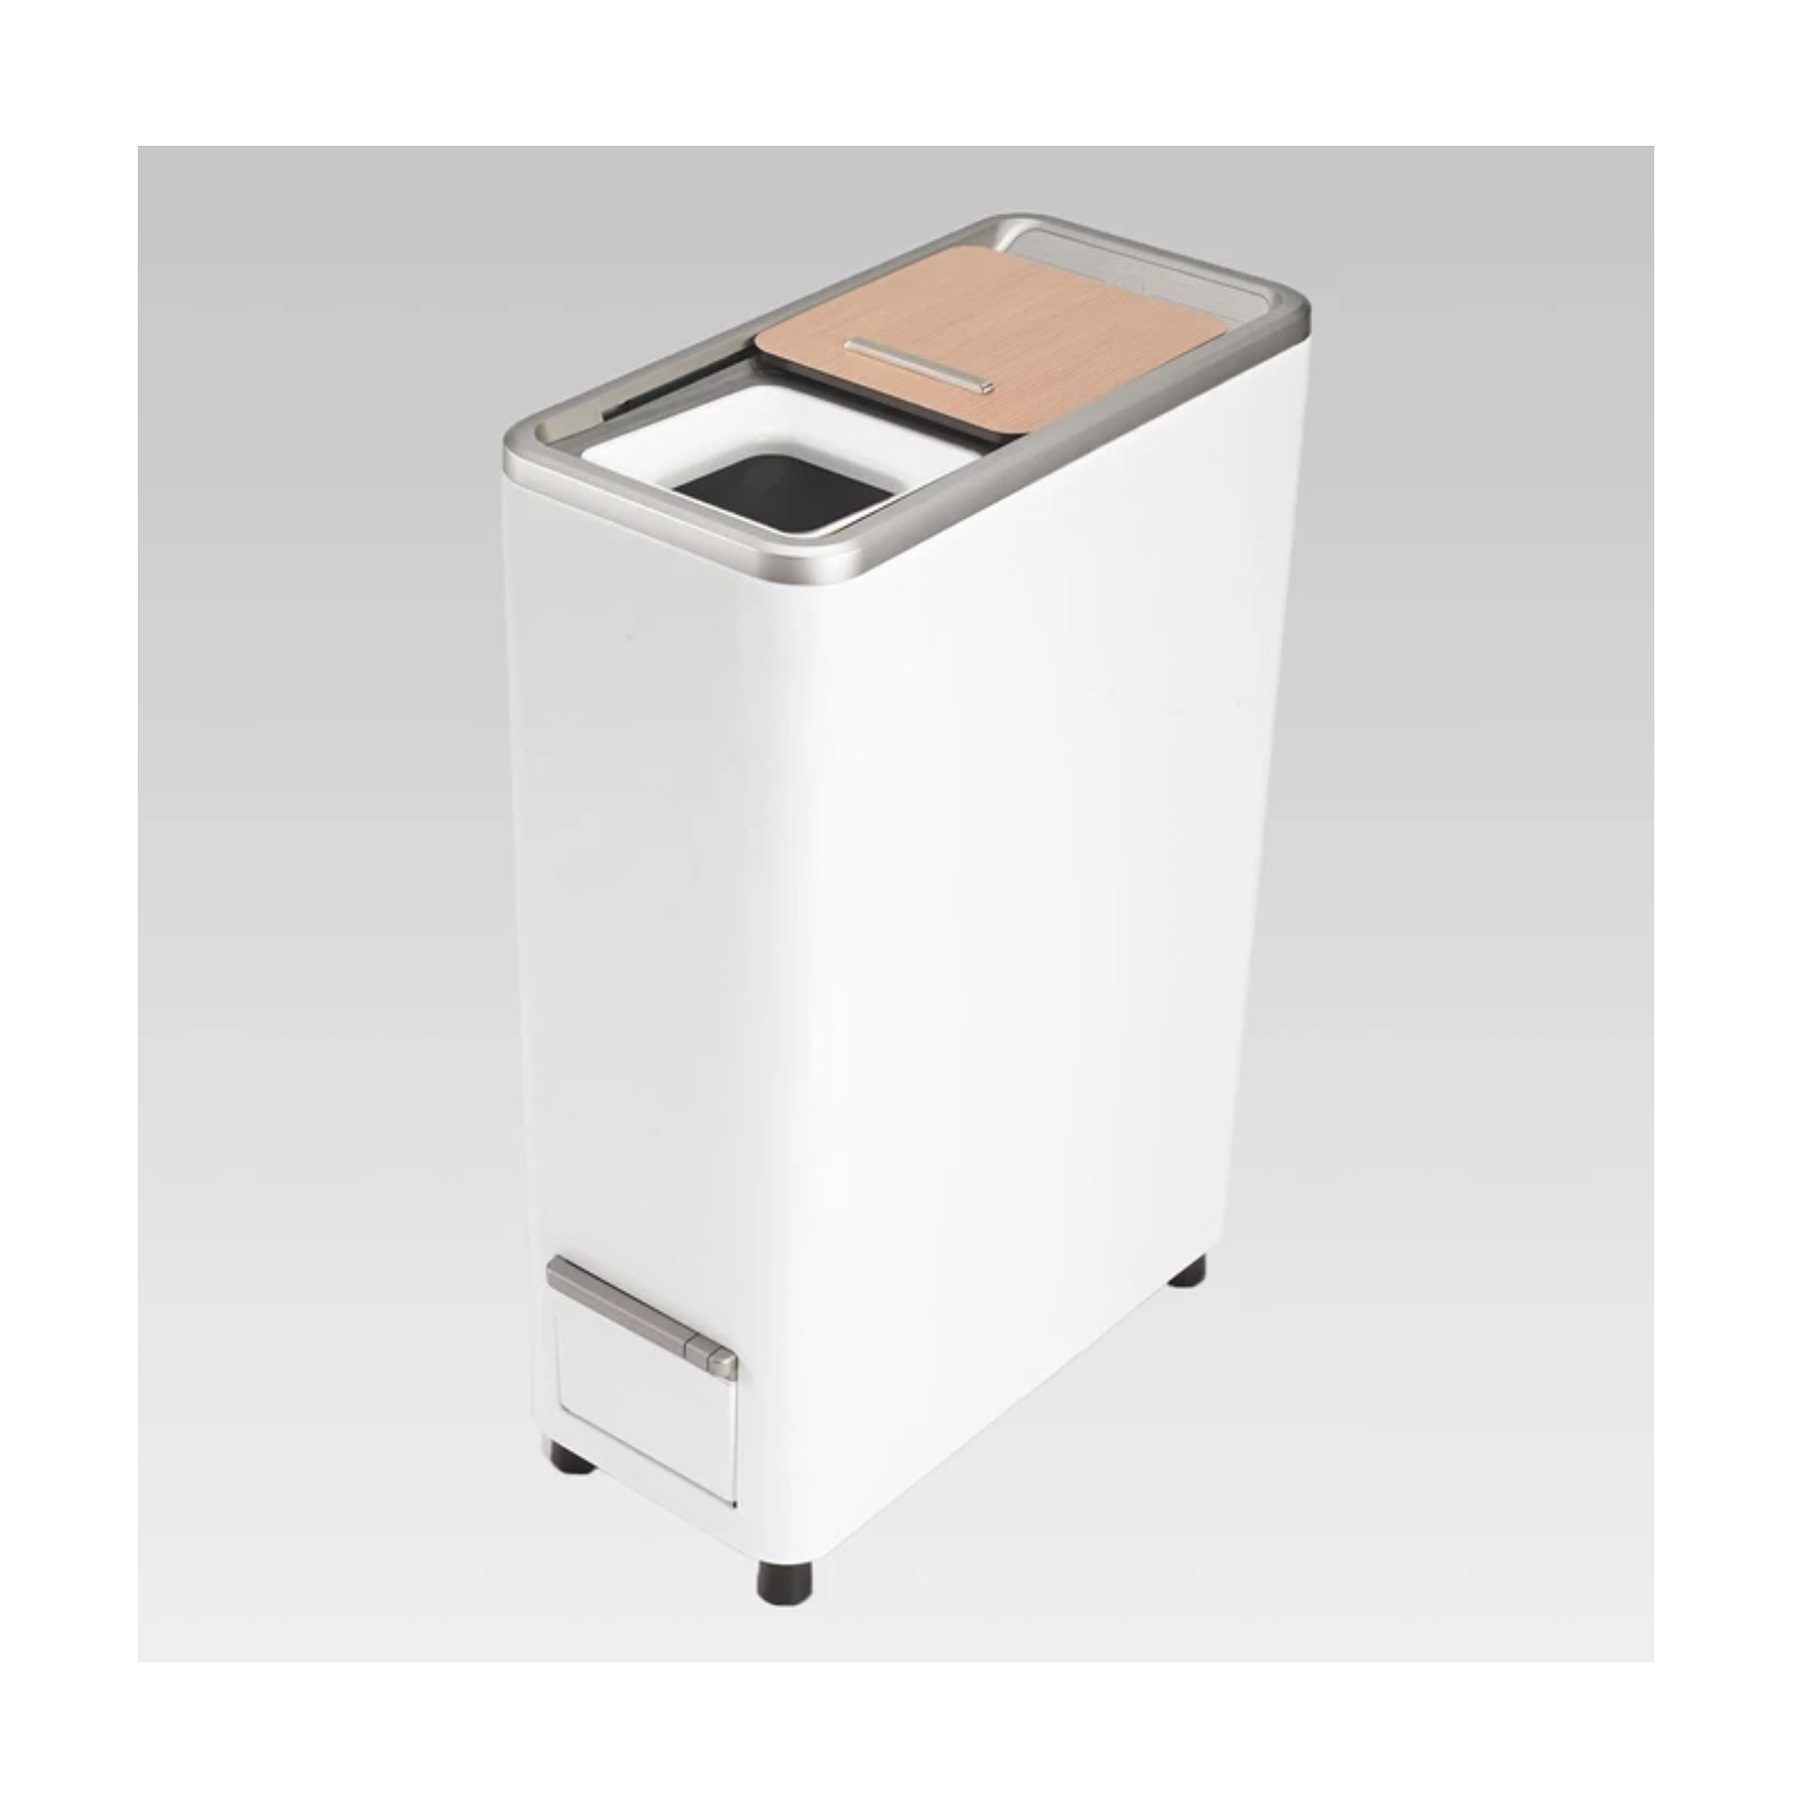 At-Home Composting System: ZERA Food Recycler